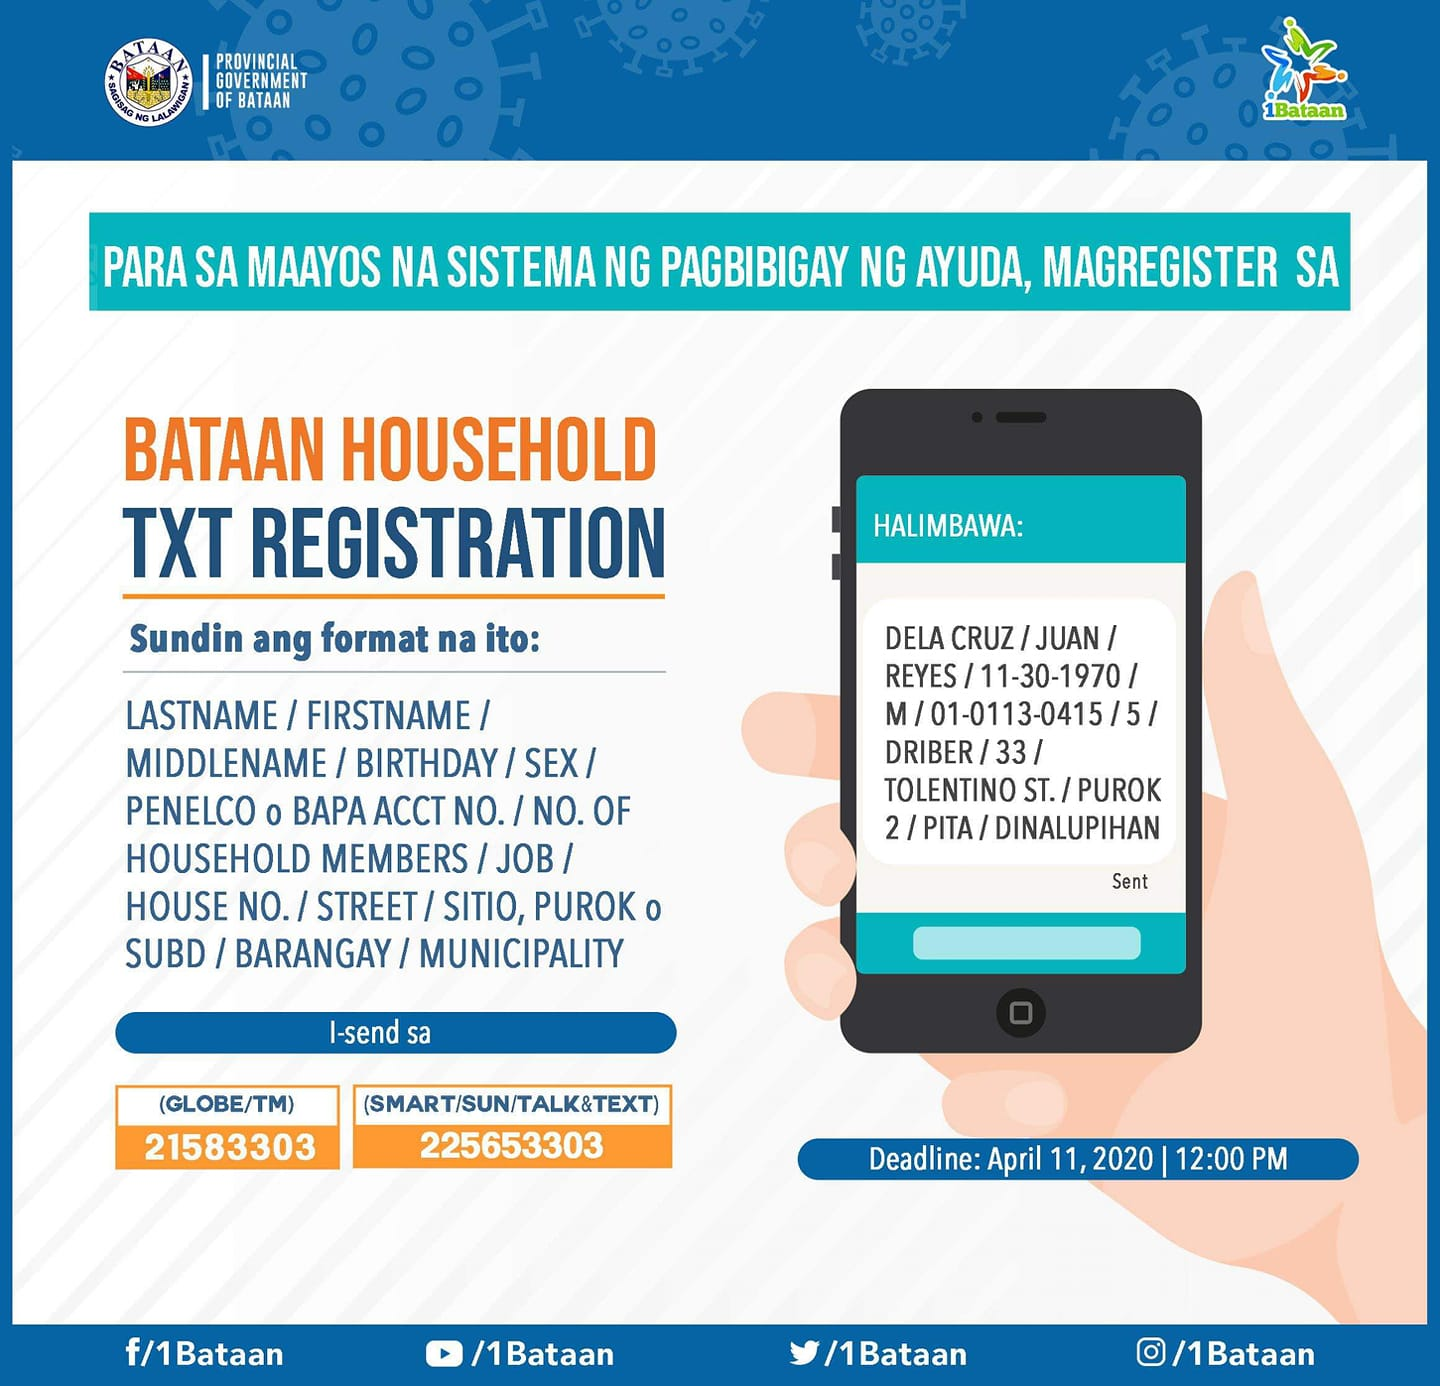 Mobile App Aided Bataan Household Registration